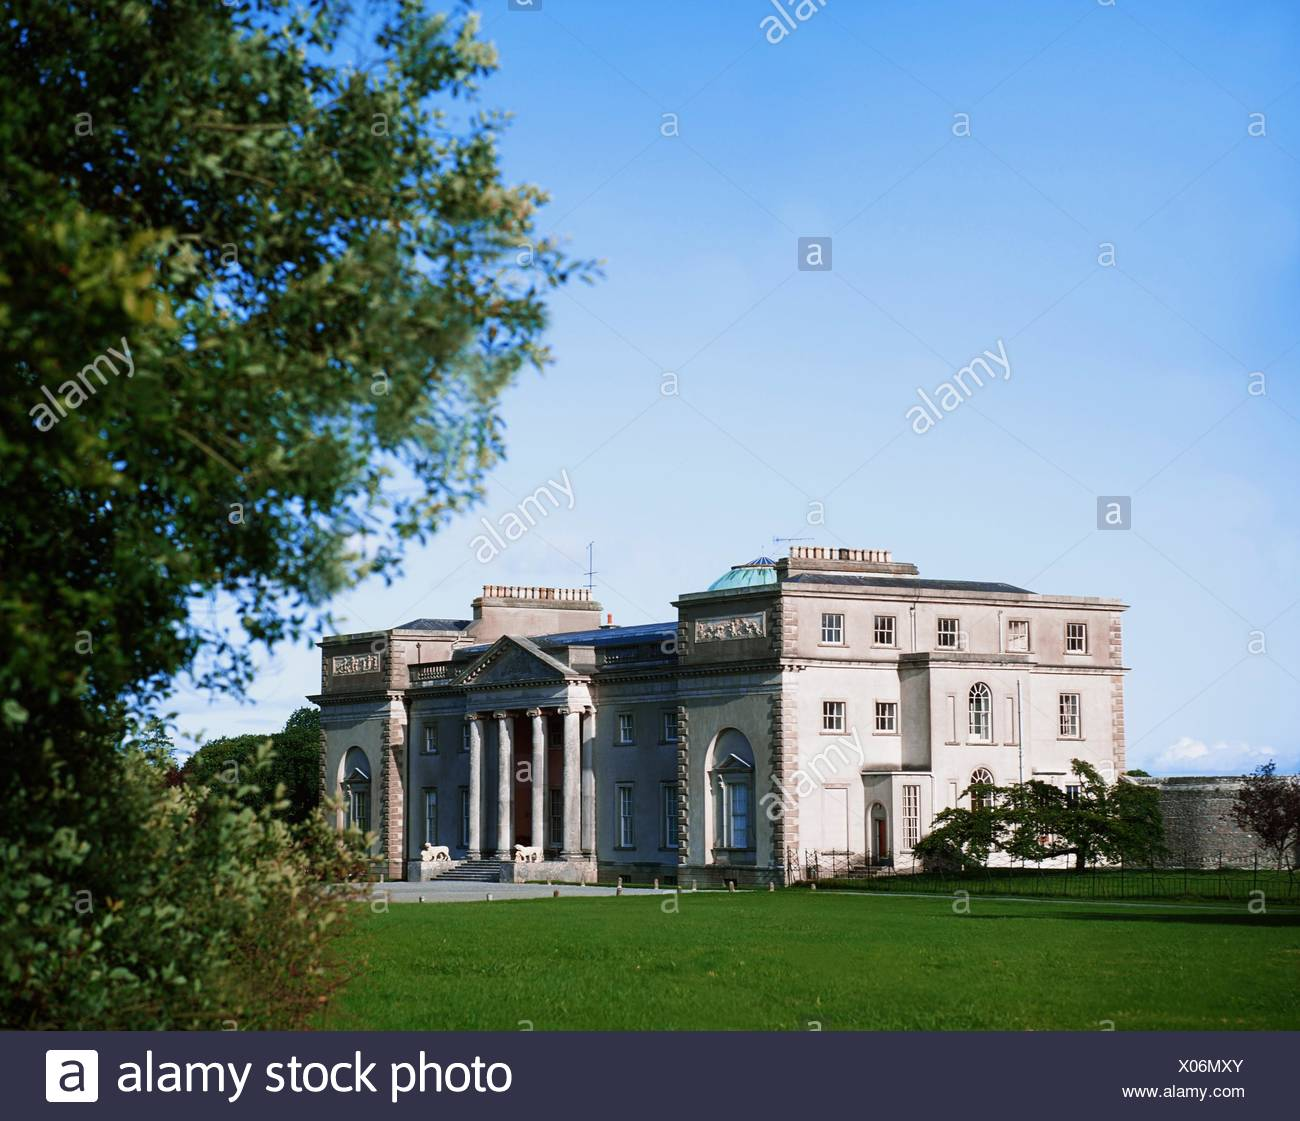 Emo Court, Co Laois, Ireland; Neo-Classical Mansion Designed By James Gandon In 1790 - Stock Image